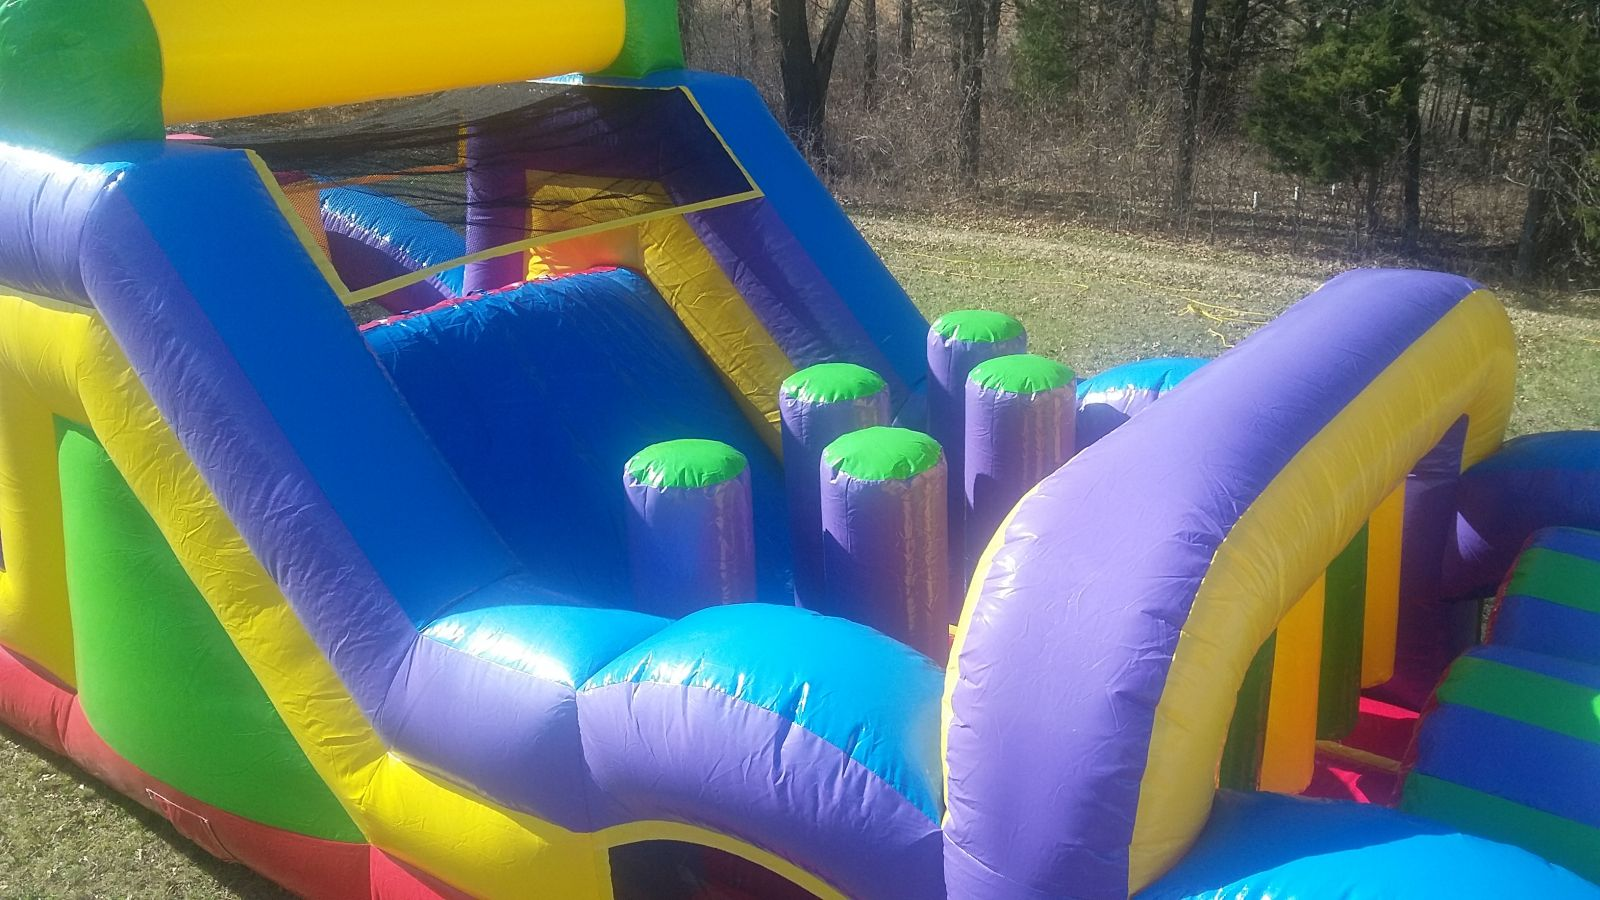 Obstacle course slide into pop-ups and inflatable hanging bars